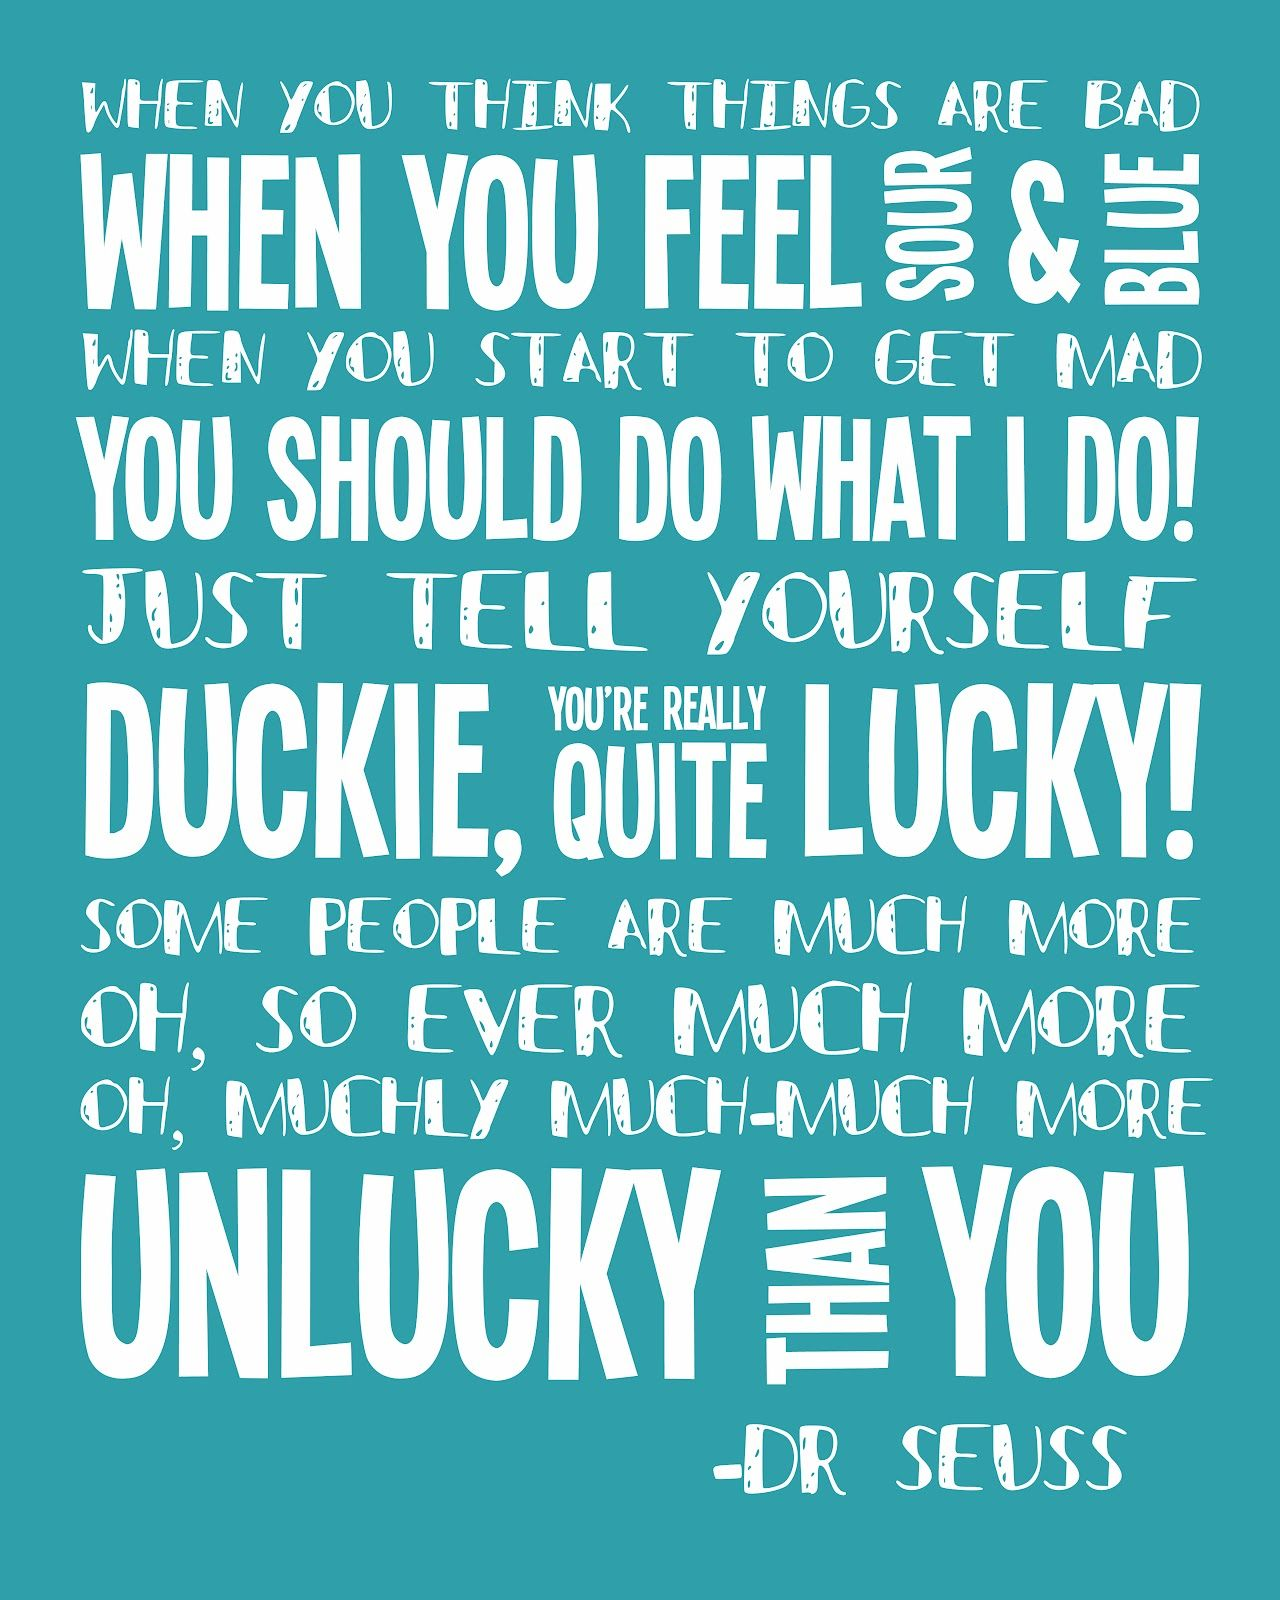 Dr Seuss: Duckie, You're Really Quite Lucky!